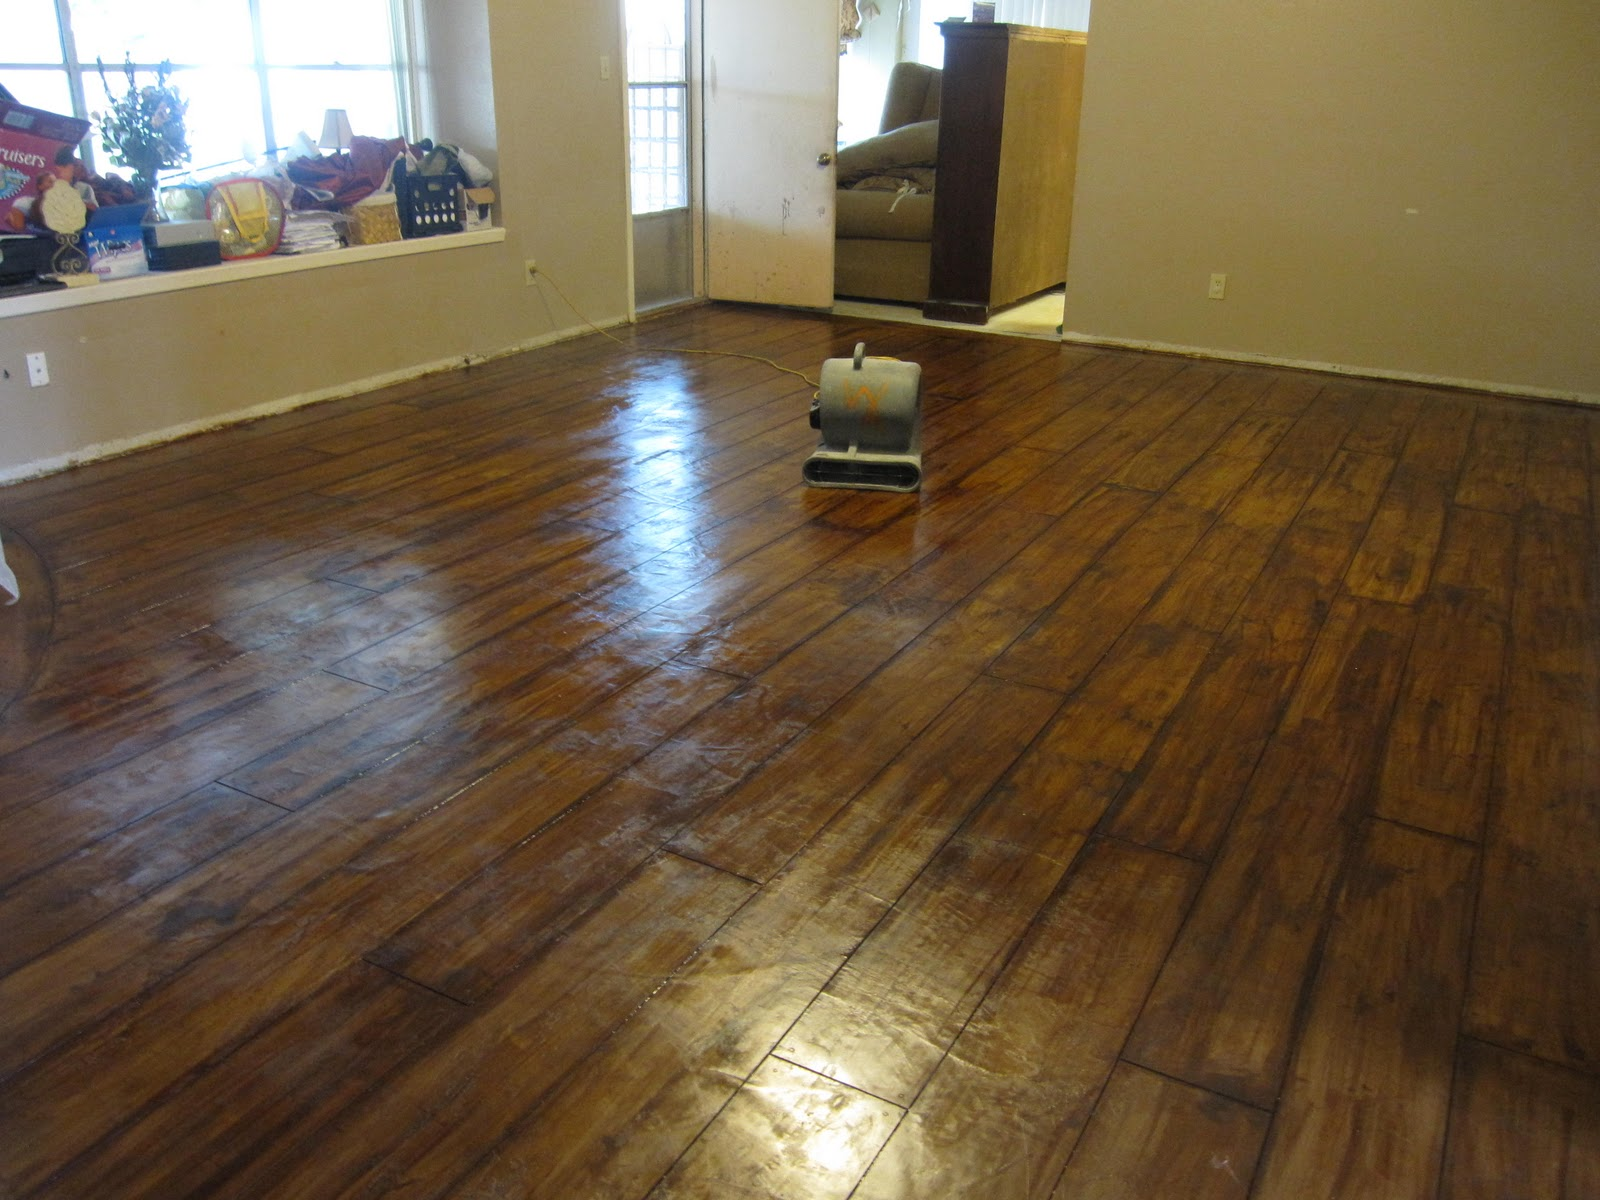 Concrete Wood Floors : Dark wide plank wood floors home decorating ideas